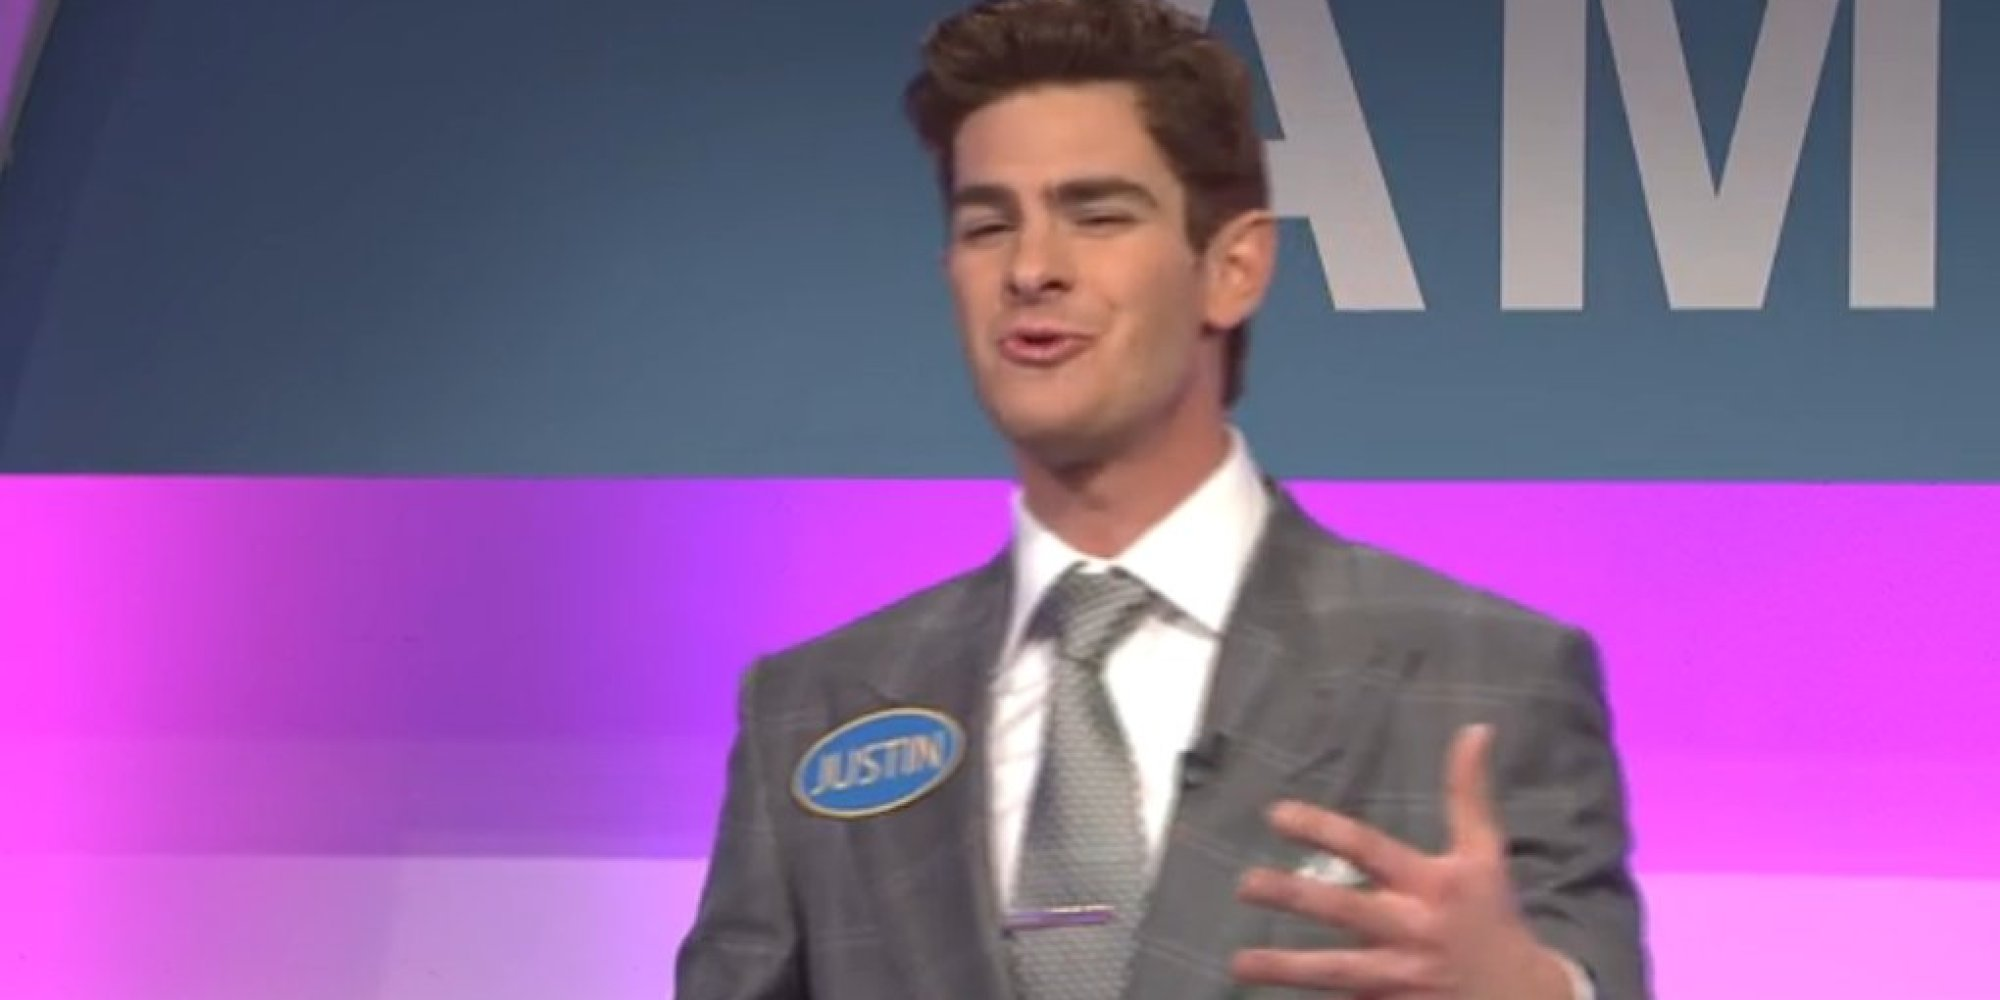 Andrew Garfield Channels Justin Timberlake In Snl Family